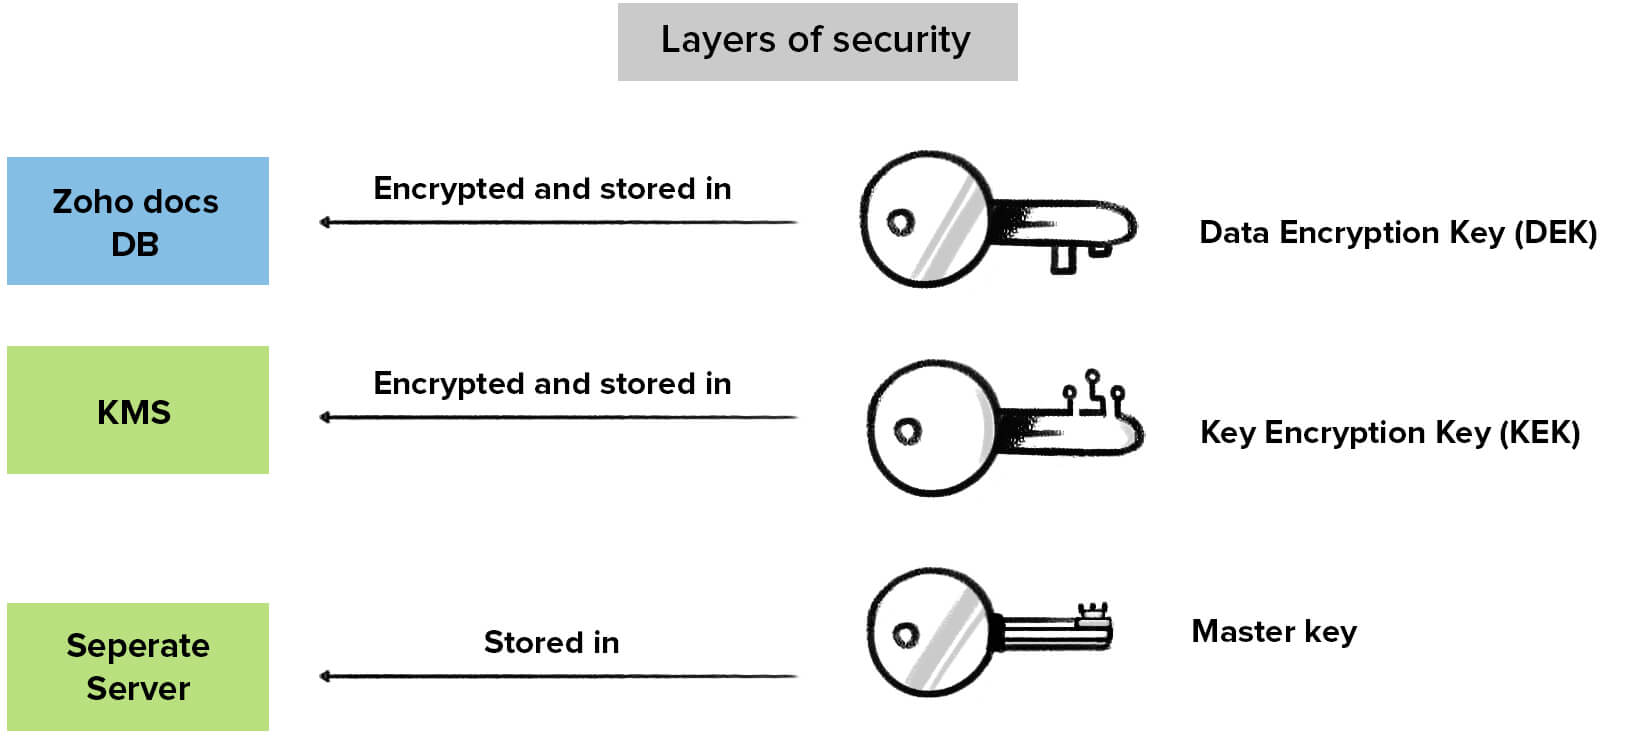 layers-security1